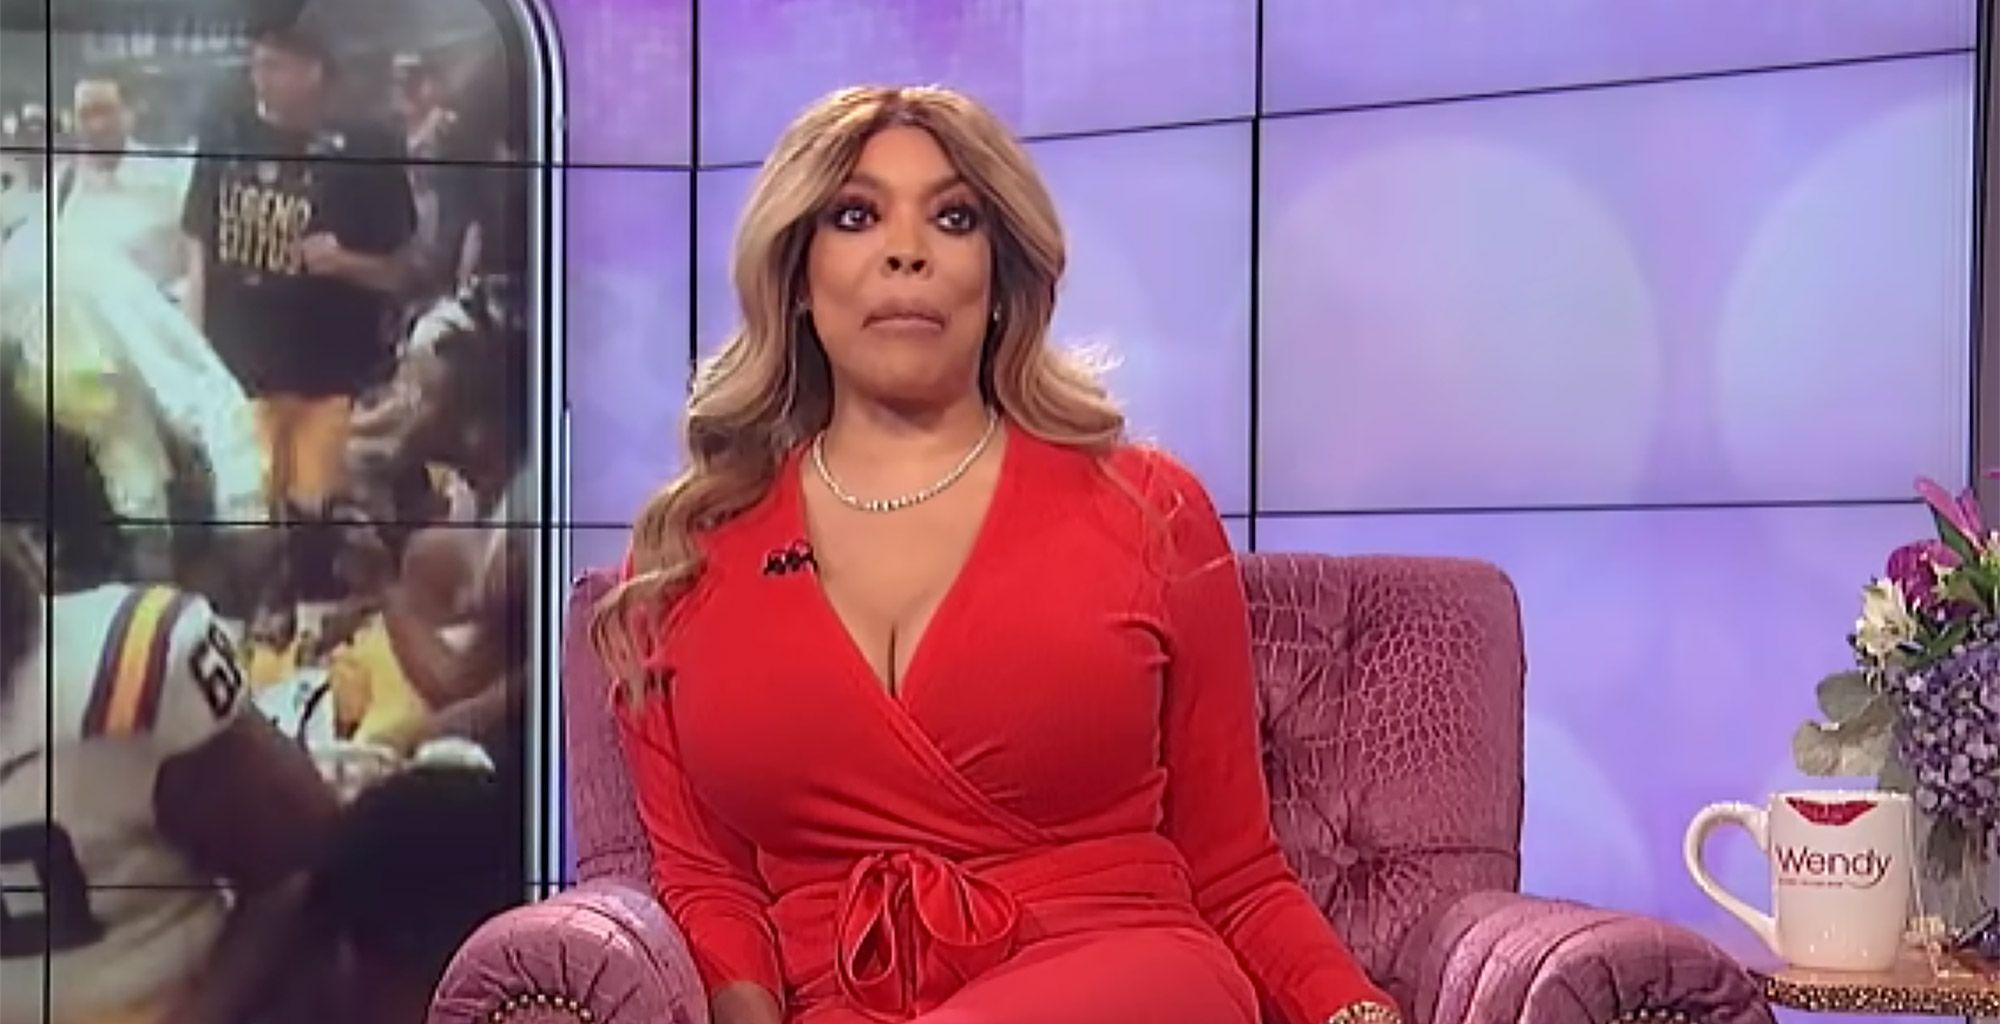 Wendy Williams Denies Passing Gas On Camera After Viral Video - Calls The Rumors 'So Stupid!'